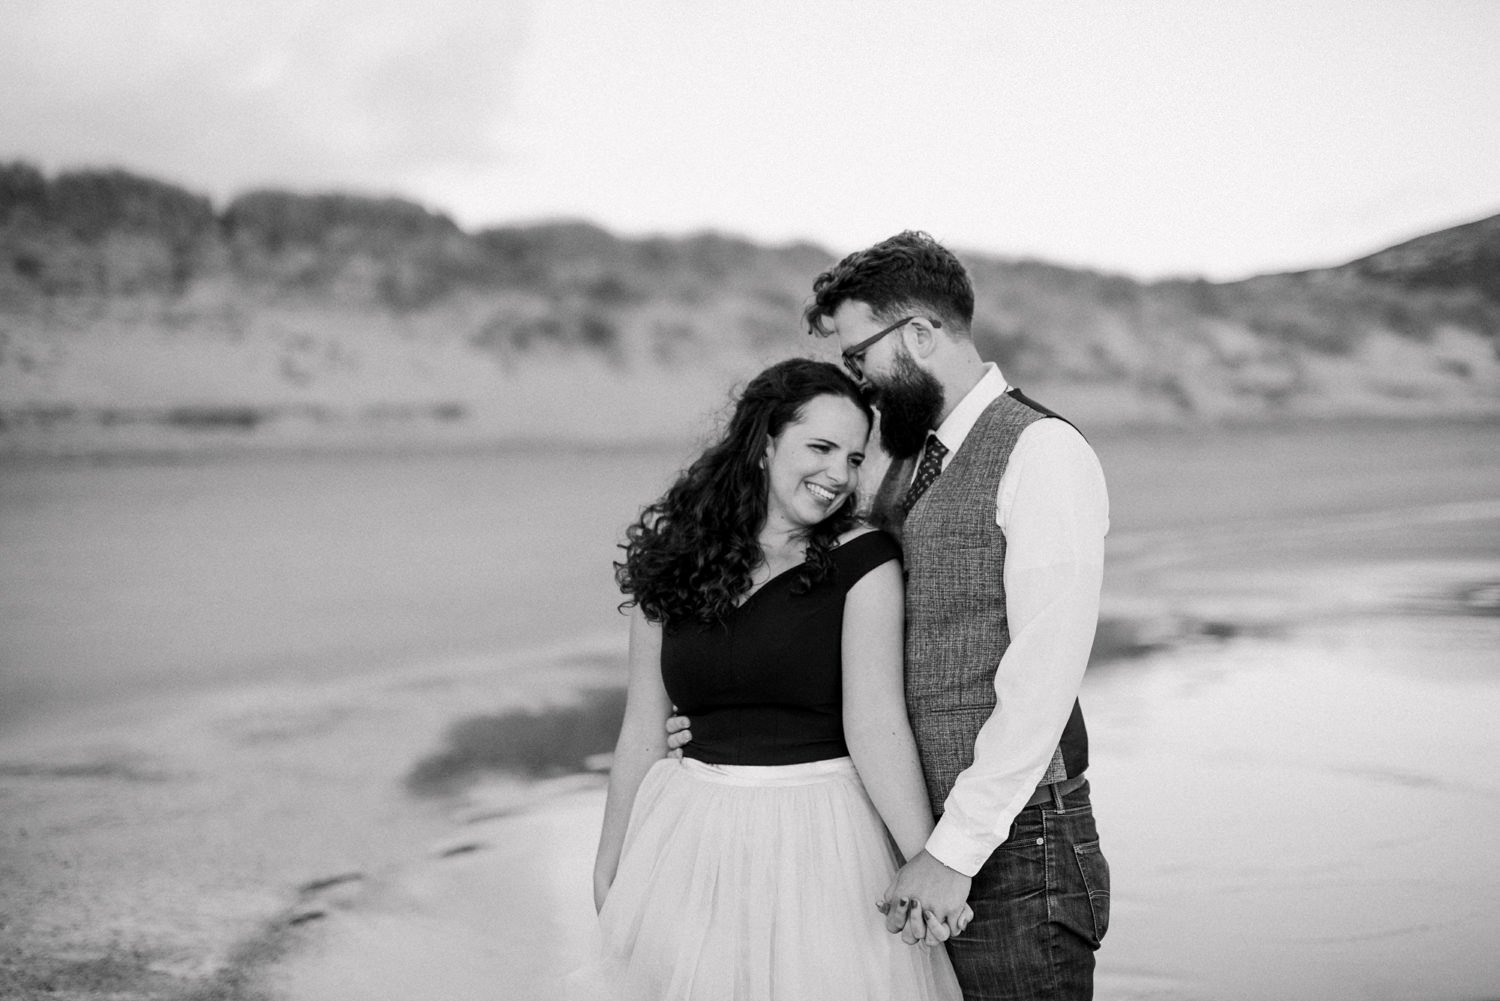 sarah-and-daniel-derryanne-engagement-photography-kerry-wedding-photographer-ireland-38